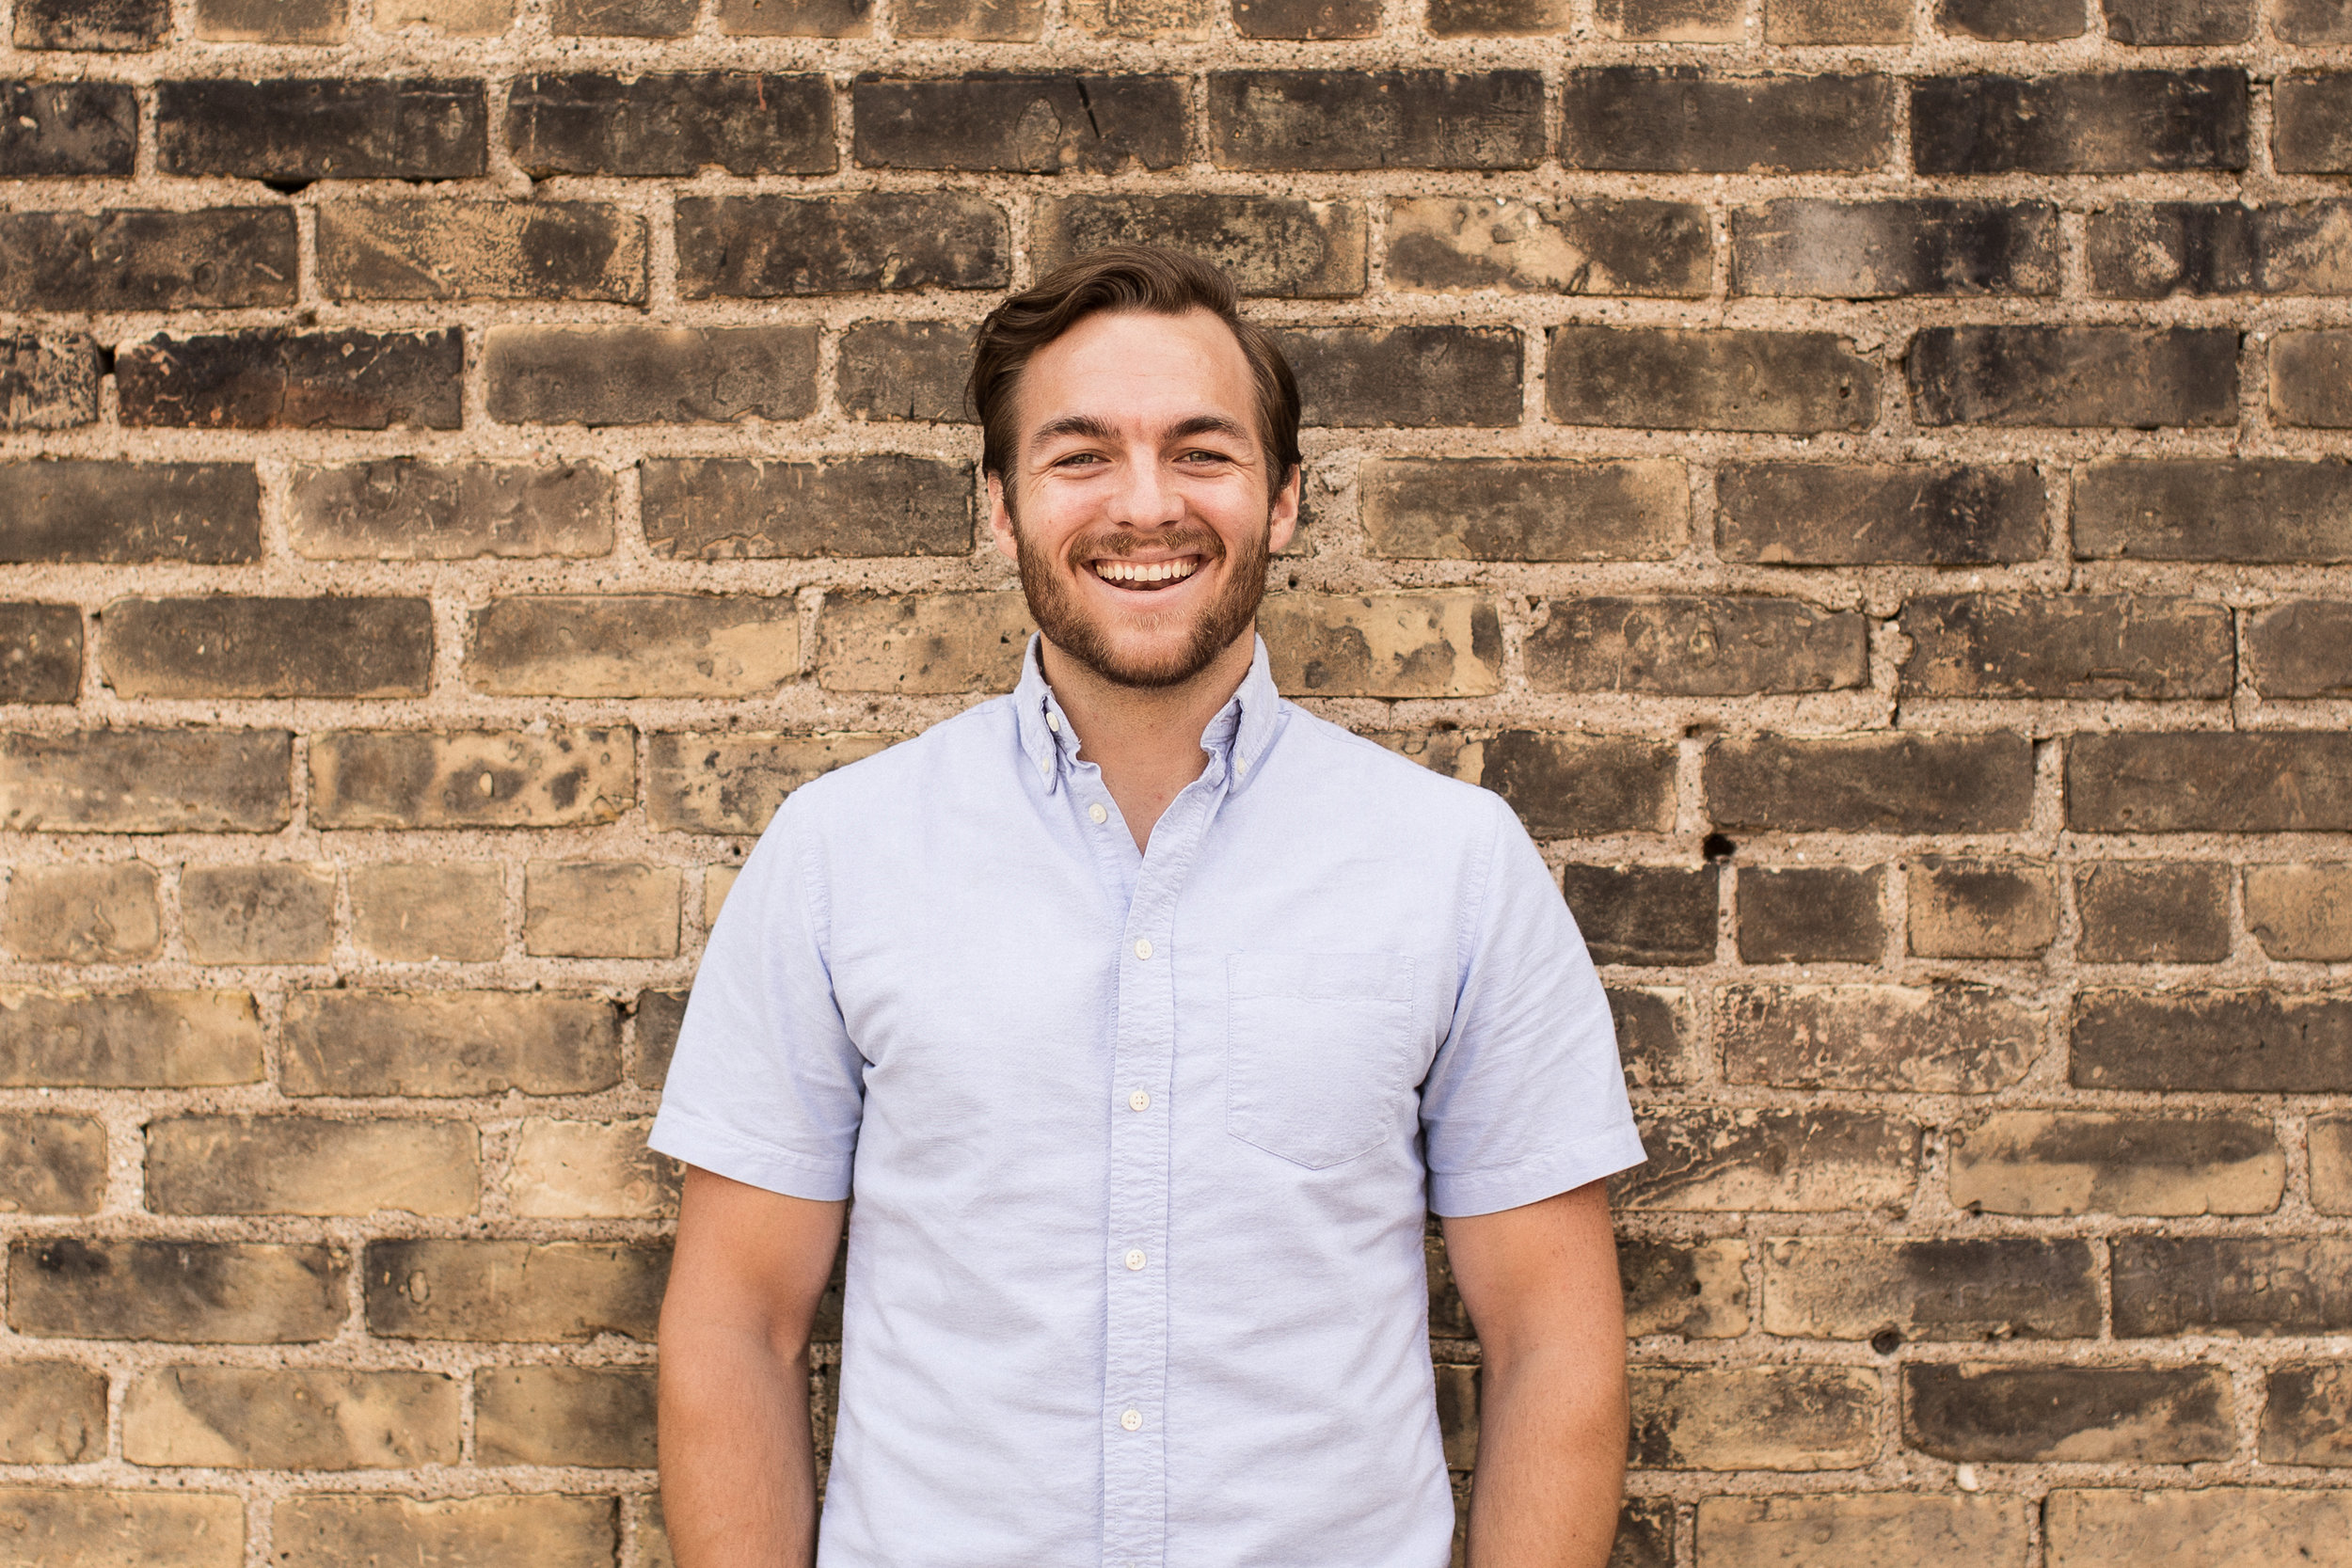 Isaac Schmidt - WORSHIP PASTORisaac.schmidt@saltcitychurch.comUndergraduate Degree: AdvertisingFavorite Food: Gummy Snacks and PomegranatesTop 2 Books: Knowledge of the Holy by A.W. Tozer and Bossypants by Tina FeyFor Fun: Rock climbing, leather working, adventuring with my wife, Abby